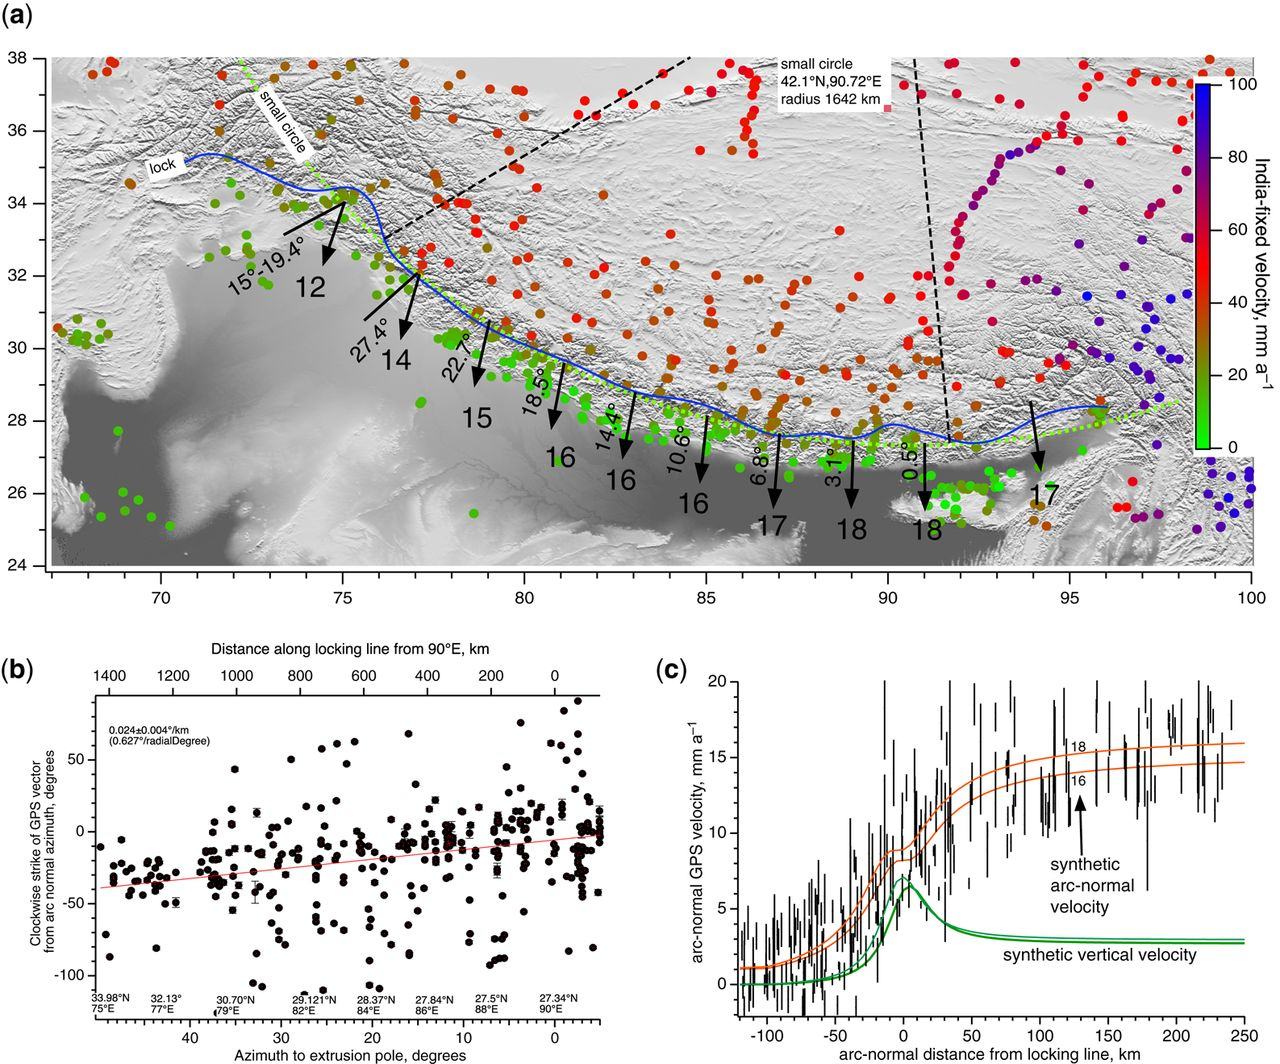 Himalayan earthquakes: a review of historical seismicity and